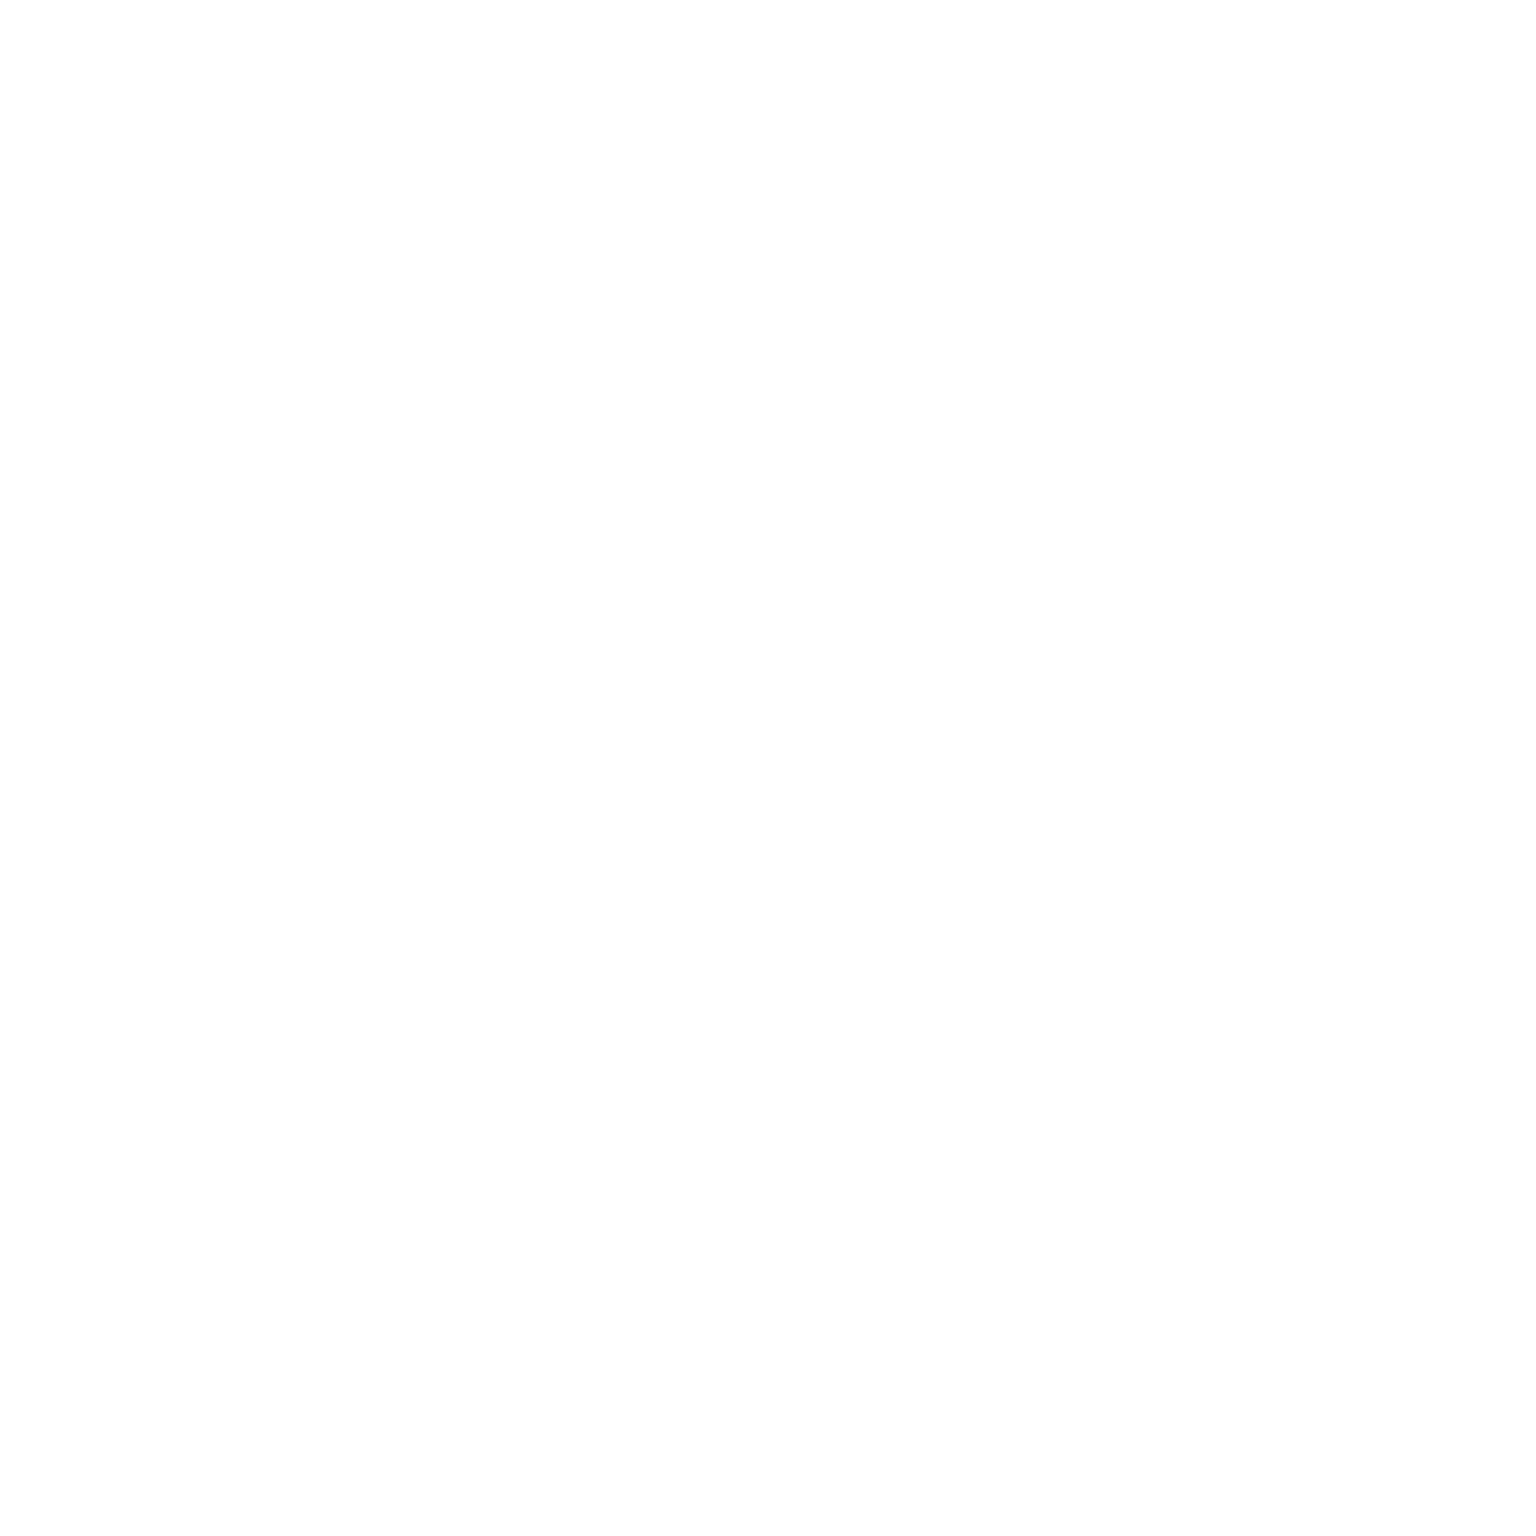 A white arrow pointing backwards